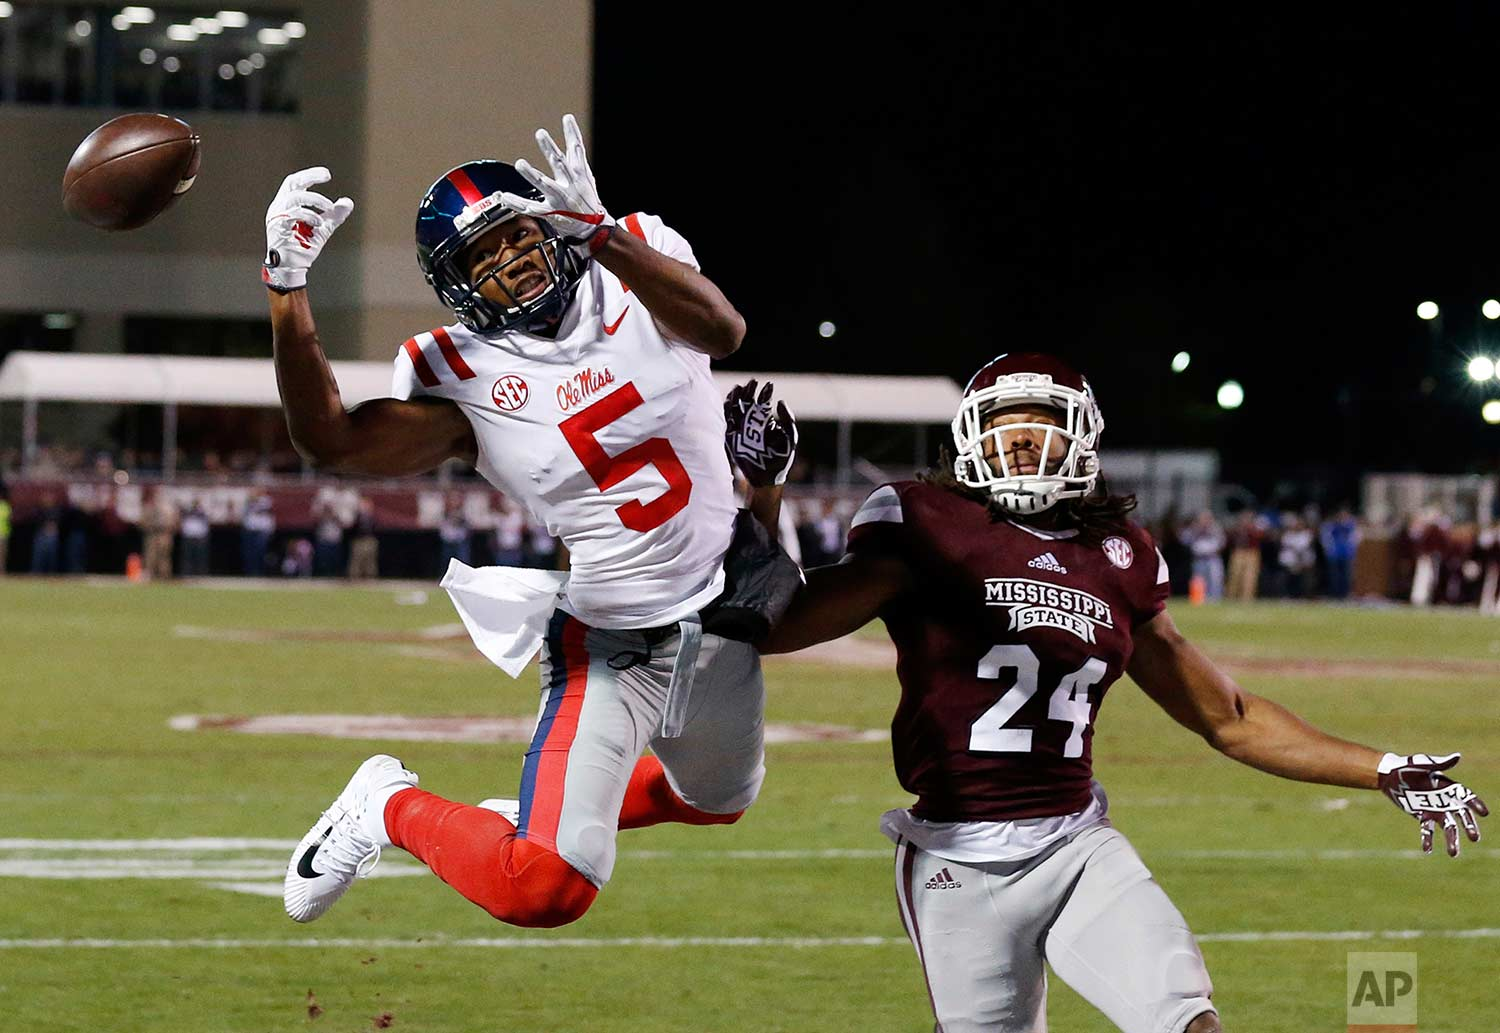 Mississippi wide receiver DaMarkus Lodge (5) cannot catch a first-half pass while Mississippi State defensive back Chris Rayford (24) defends during an NCAA college football game in Starkville, Miss., Thursday, Nov. 23, 2017. Mississippi won 31-28. (AP Photo/Rogelio V. Solis)